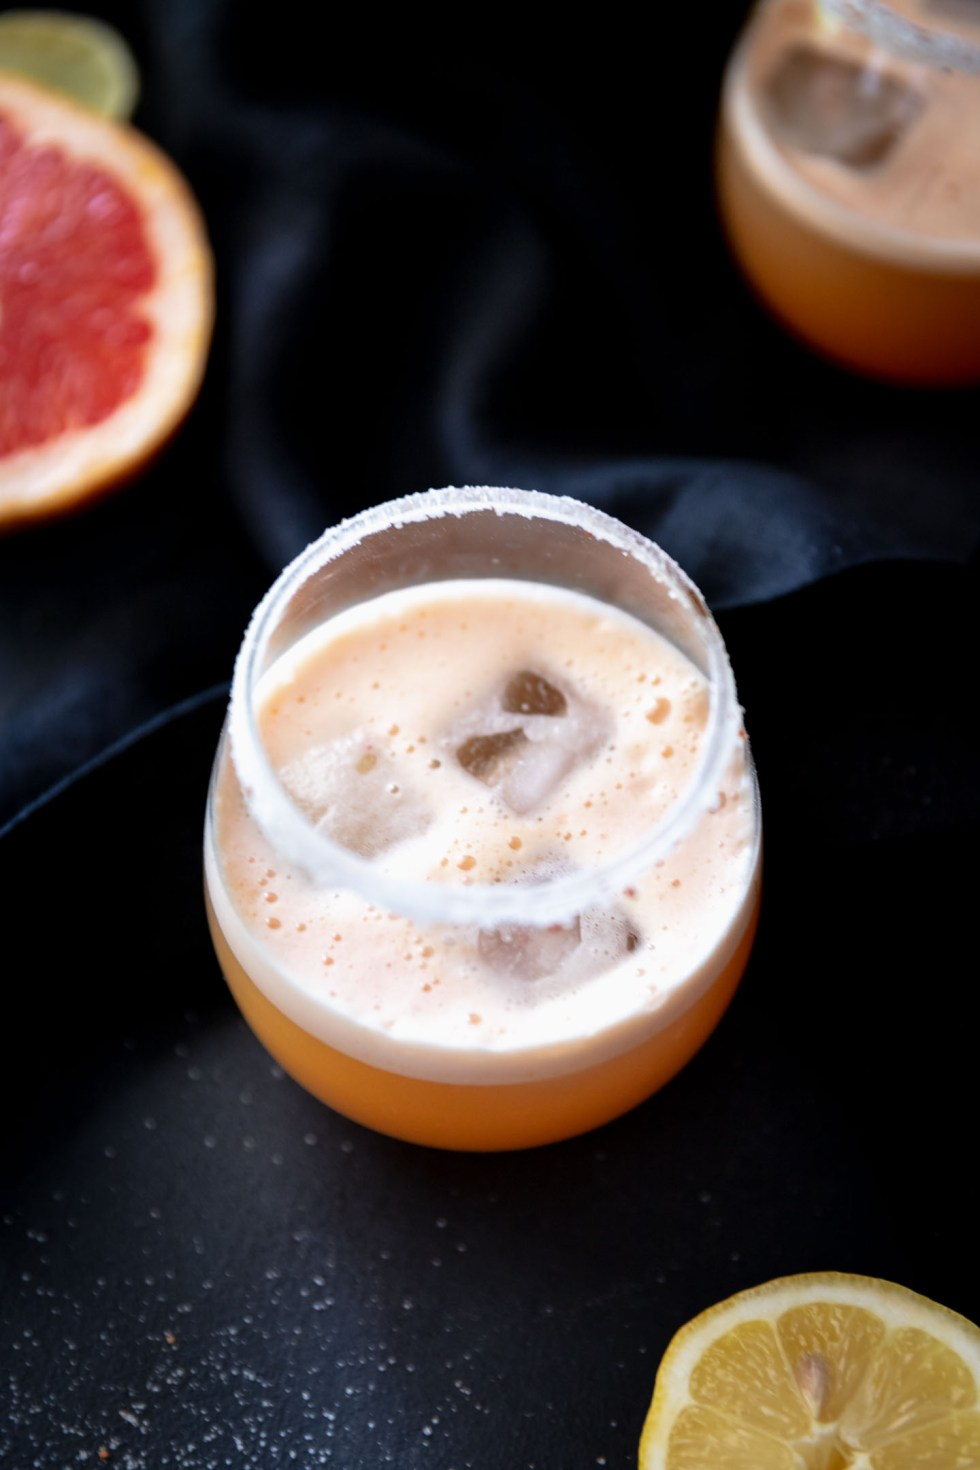 Stemless wine glass filled with grapefruit margarita and square ice cubes